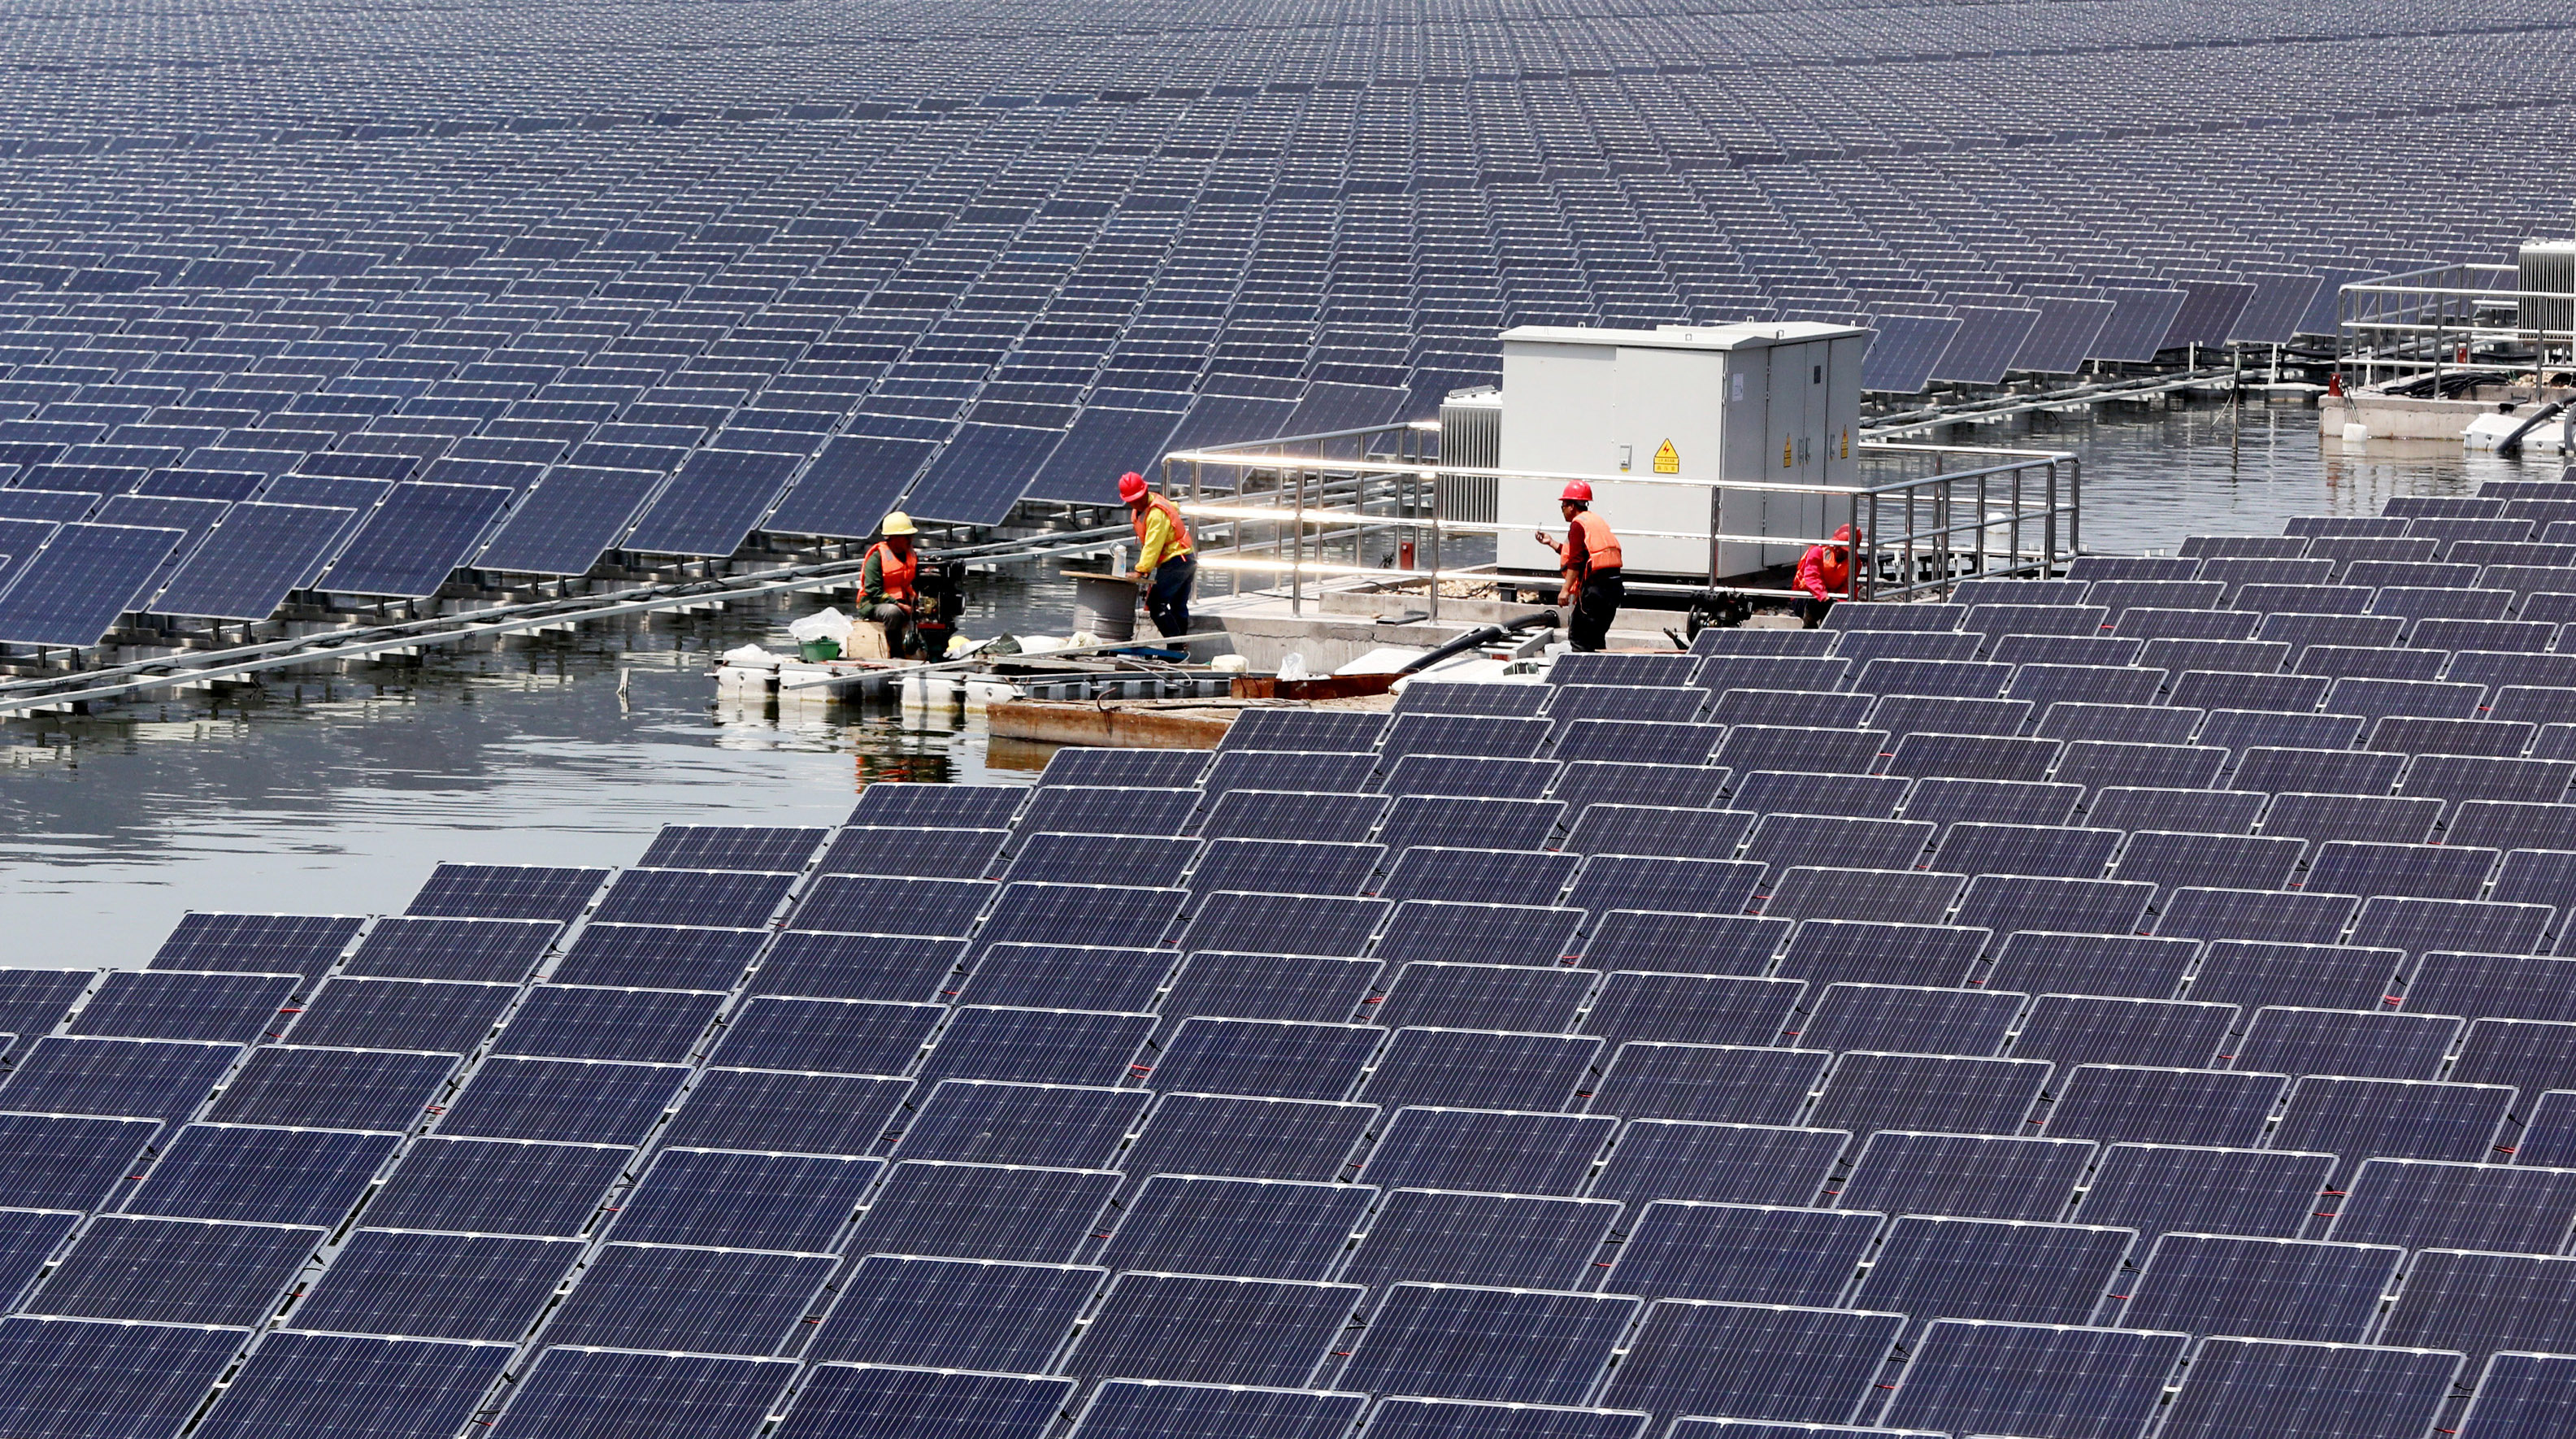 Solar panels are seen at a floating solar plant in Huaibei, Anhui province, China April 24, 2018.  China Daily via REUTERS  ATTENTION EDITORS - THIS IMAGE WAS PROVIDED BY A THIRD PARTY. CHINA OUT. - RC169F9B8310